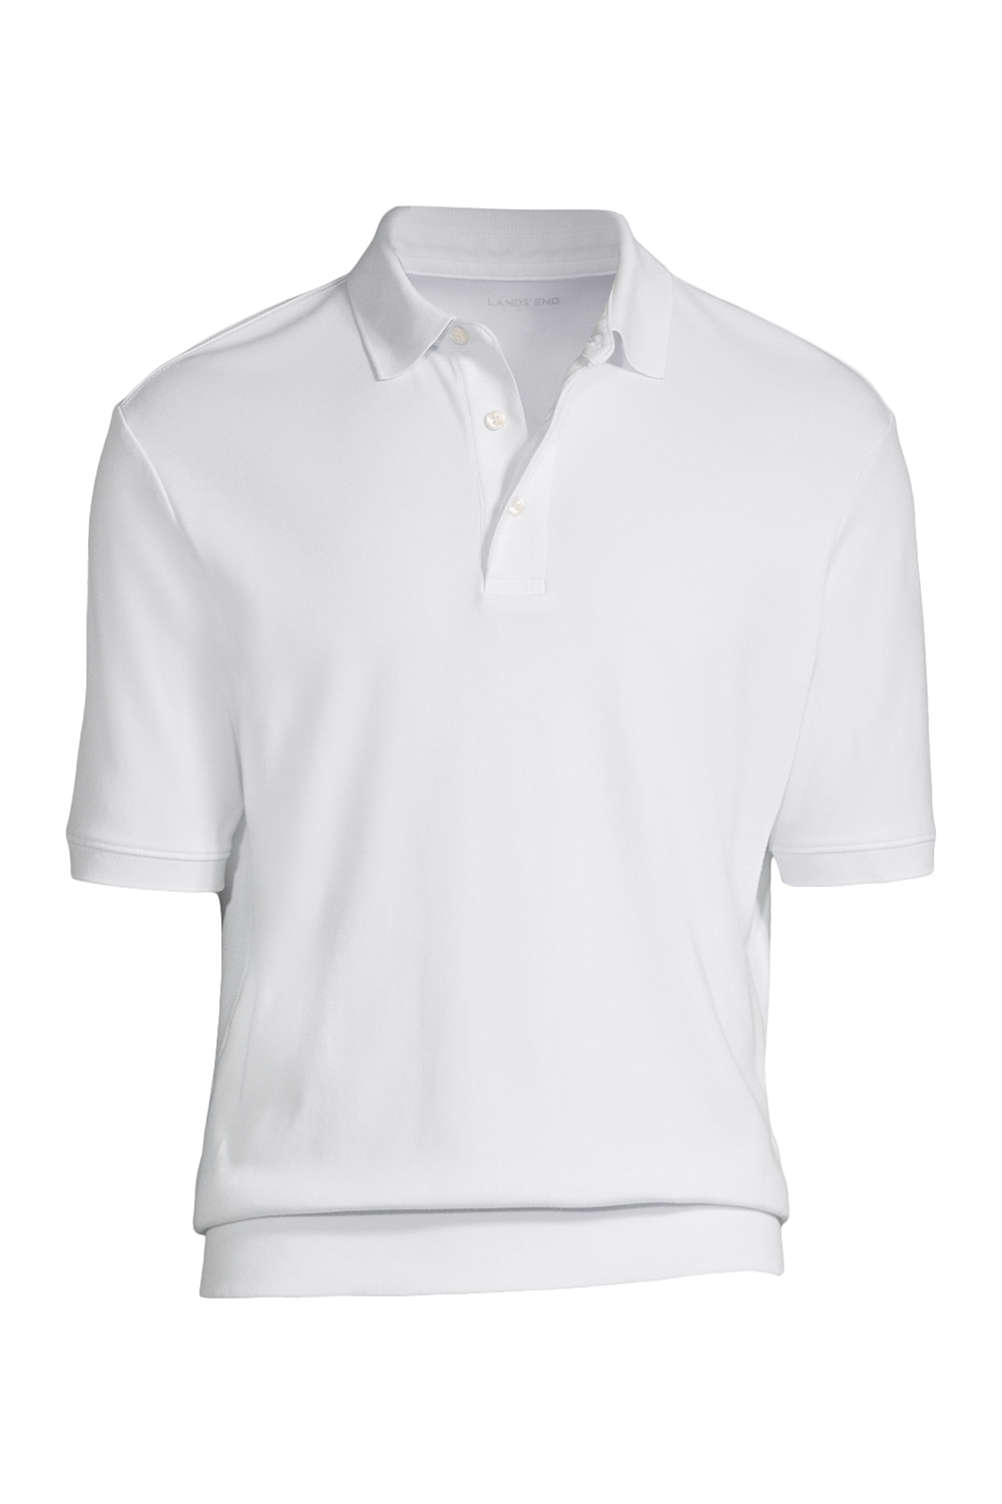 c1f8370dffd Men's Short Sleeve Banded Bottom Supima Polo Shirt from Lands' End